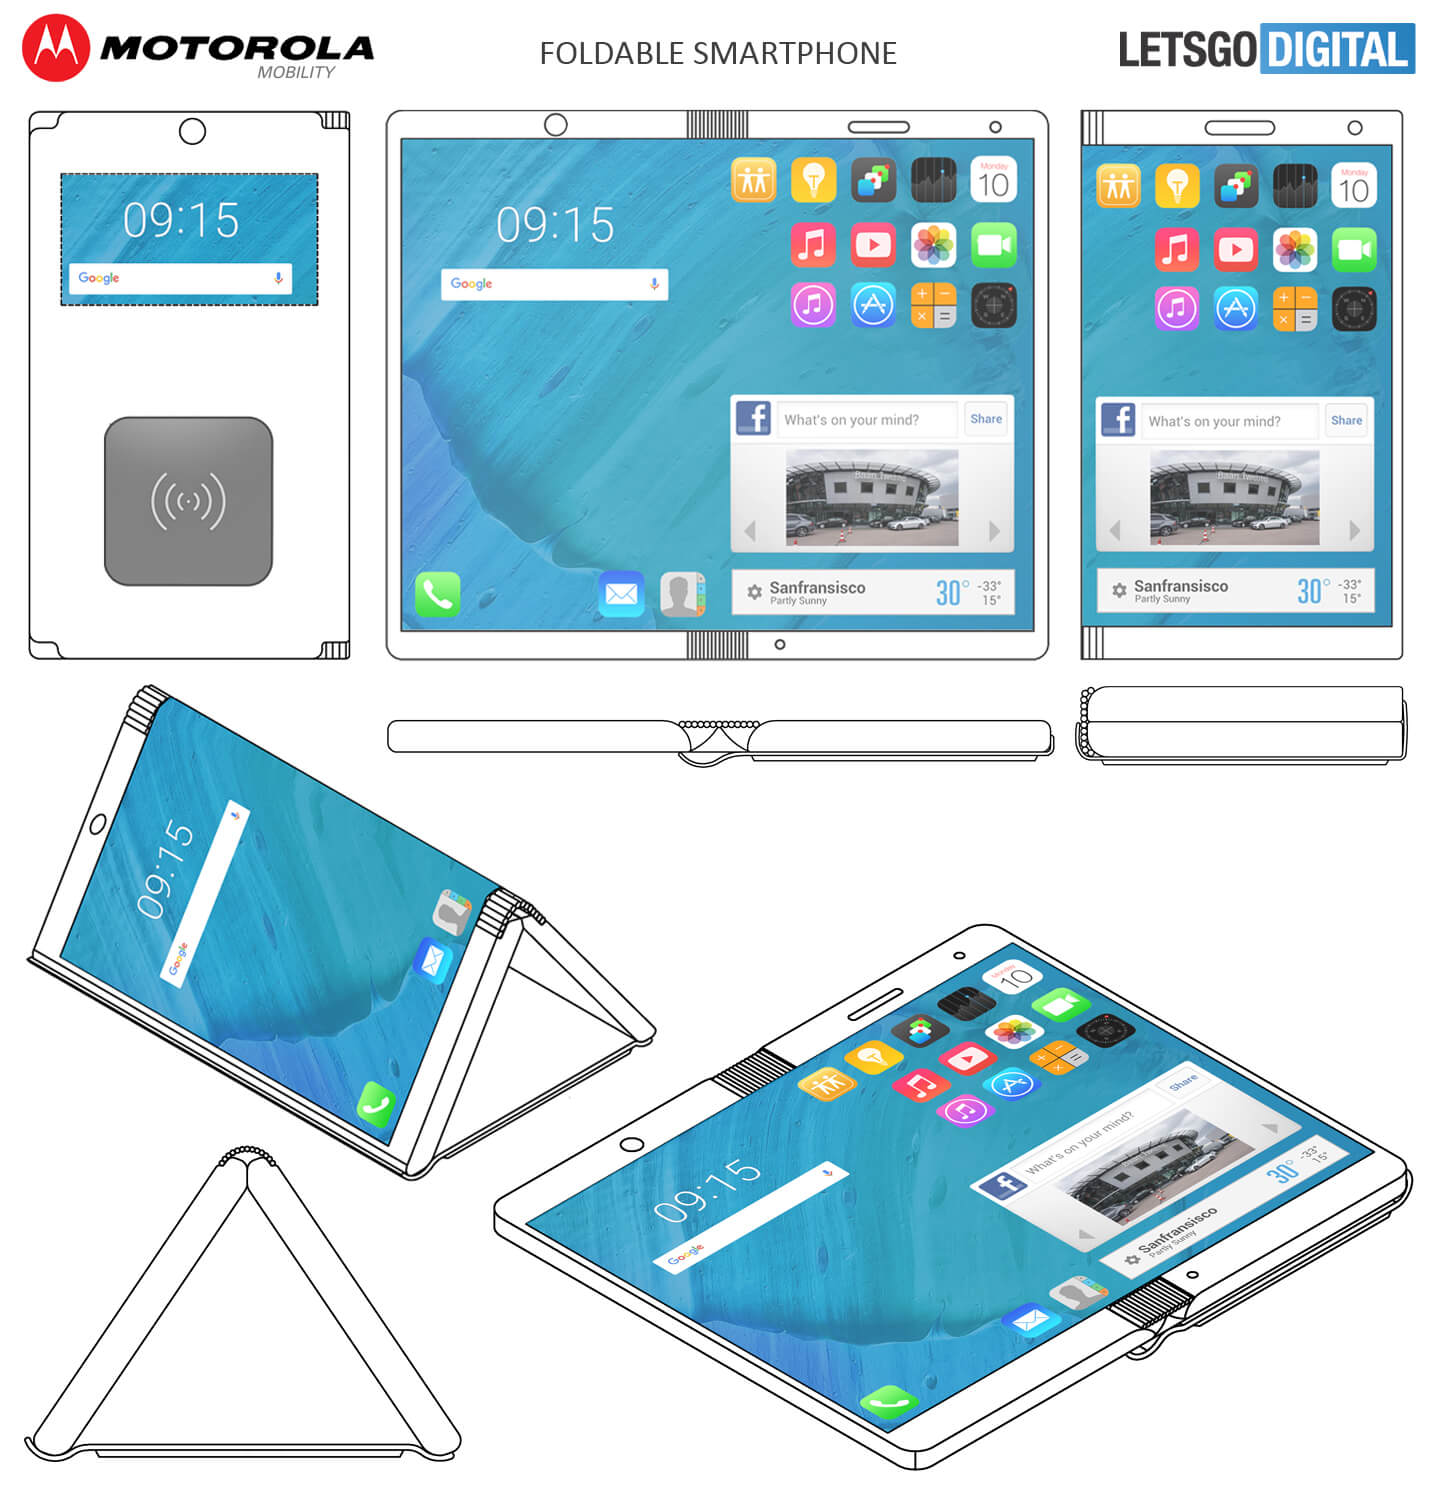 Motorola files patent for a foldable smartphone that unfolds into a tablet